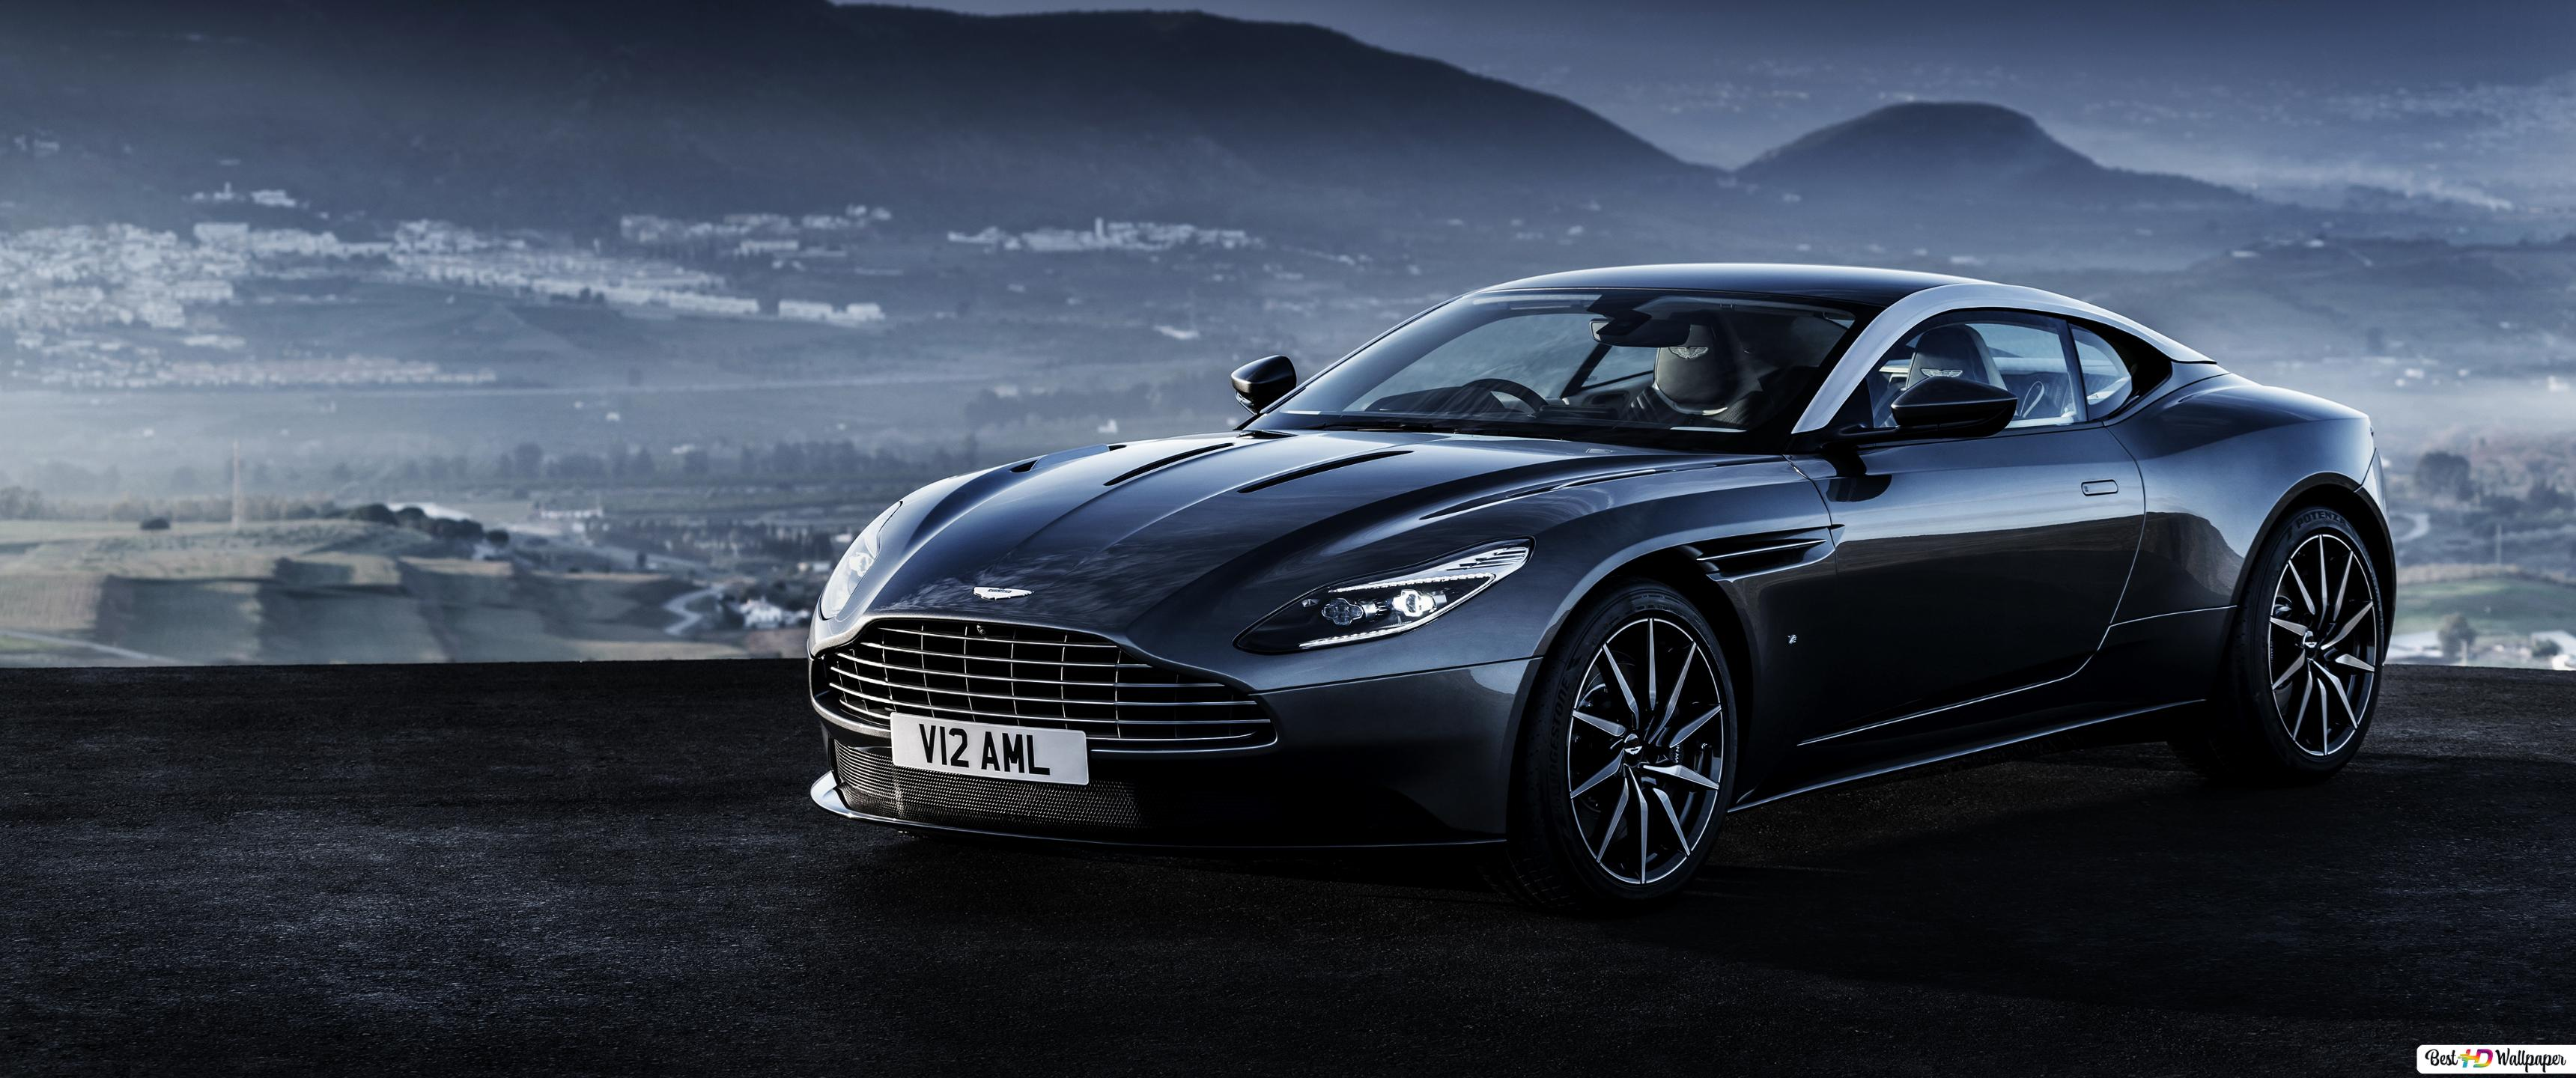 Black Aston Martin Db11 With Mountains As Background Hd Wallpaper Download